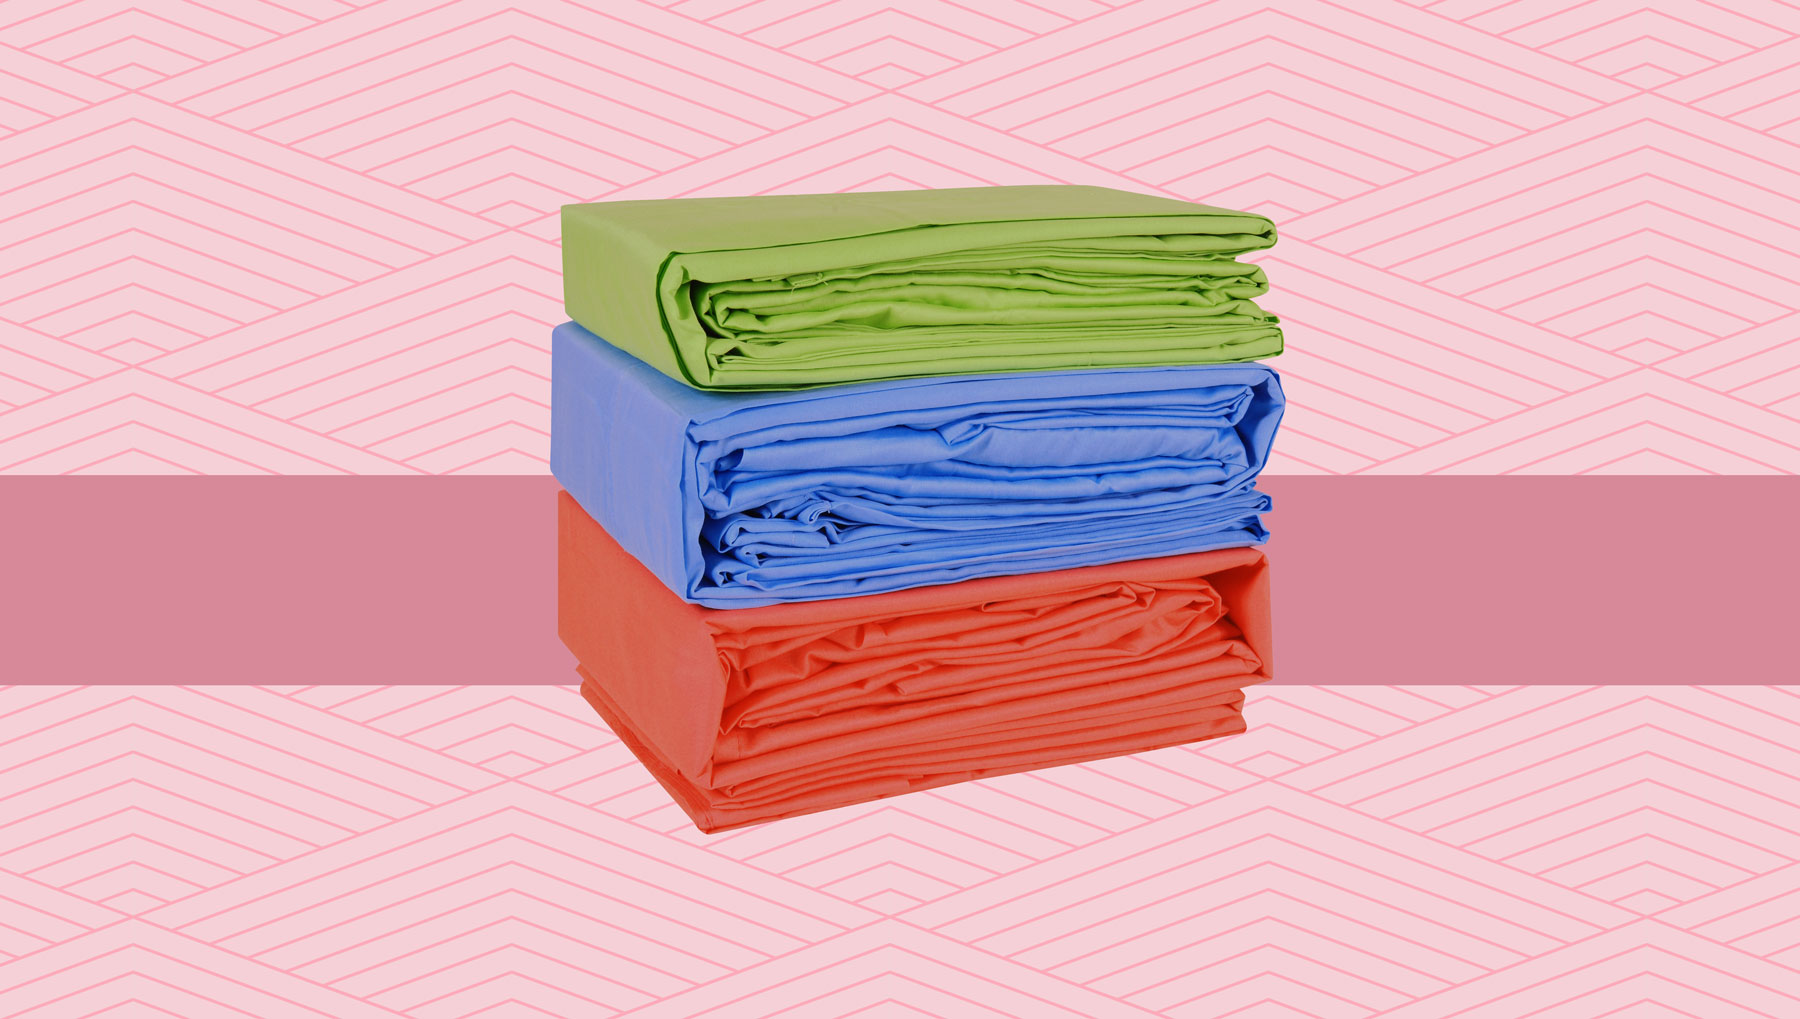 How to fold a fitted sheet - folding a fitted sheet guide